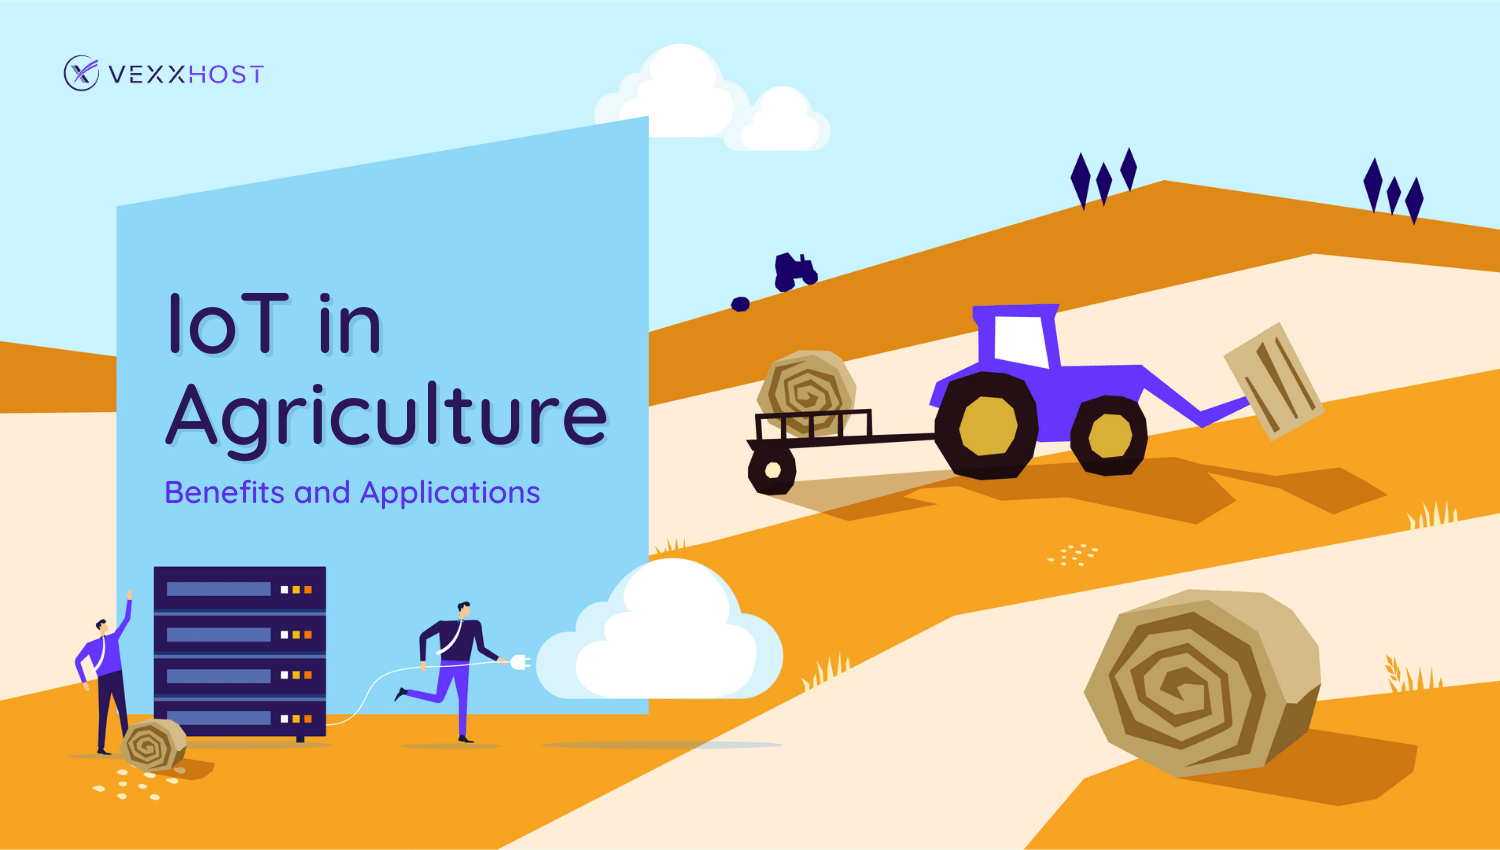 IoT in Agriculture: Benefits and Applications